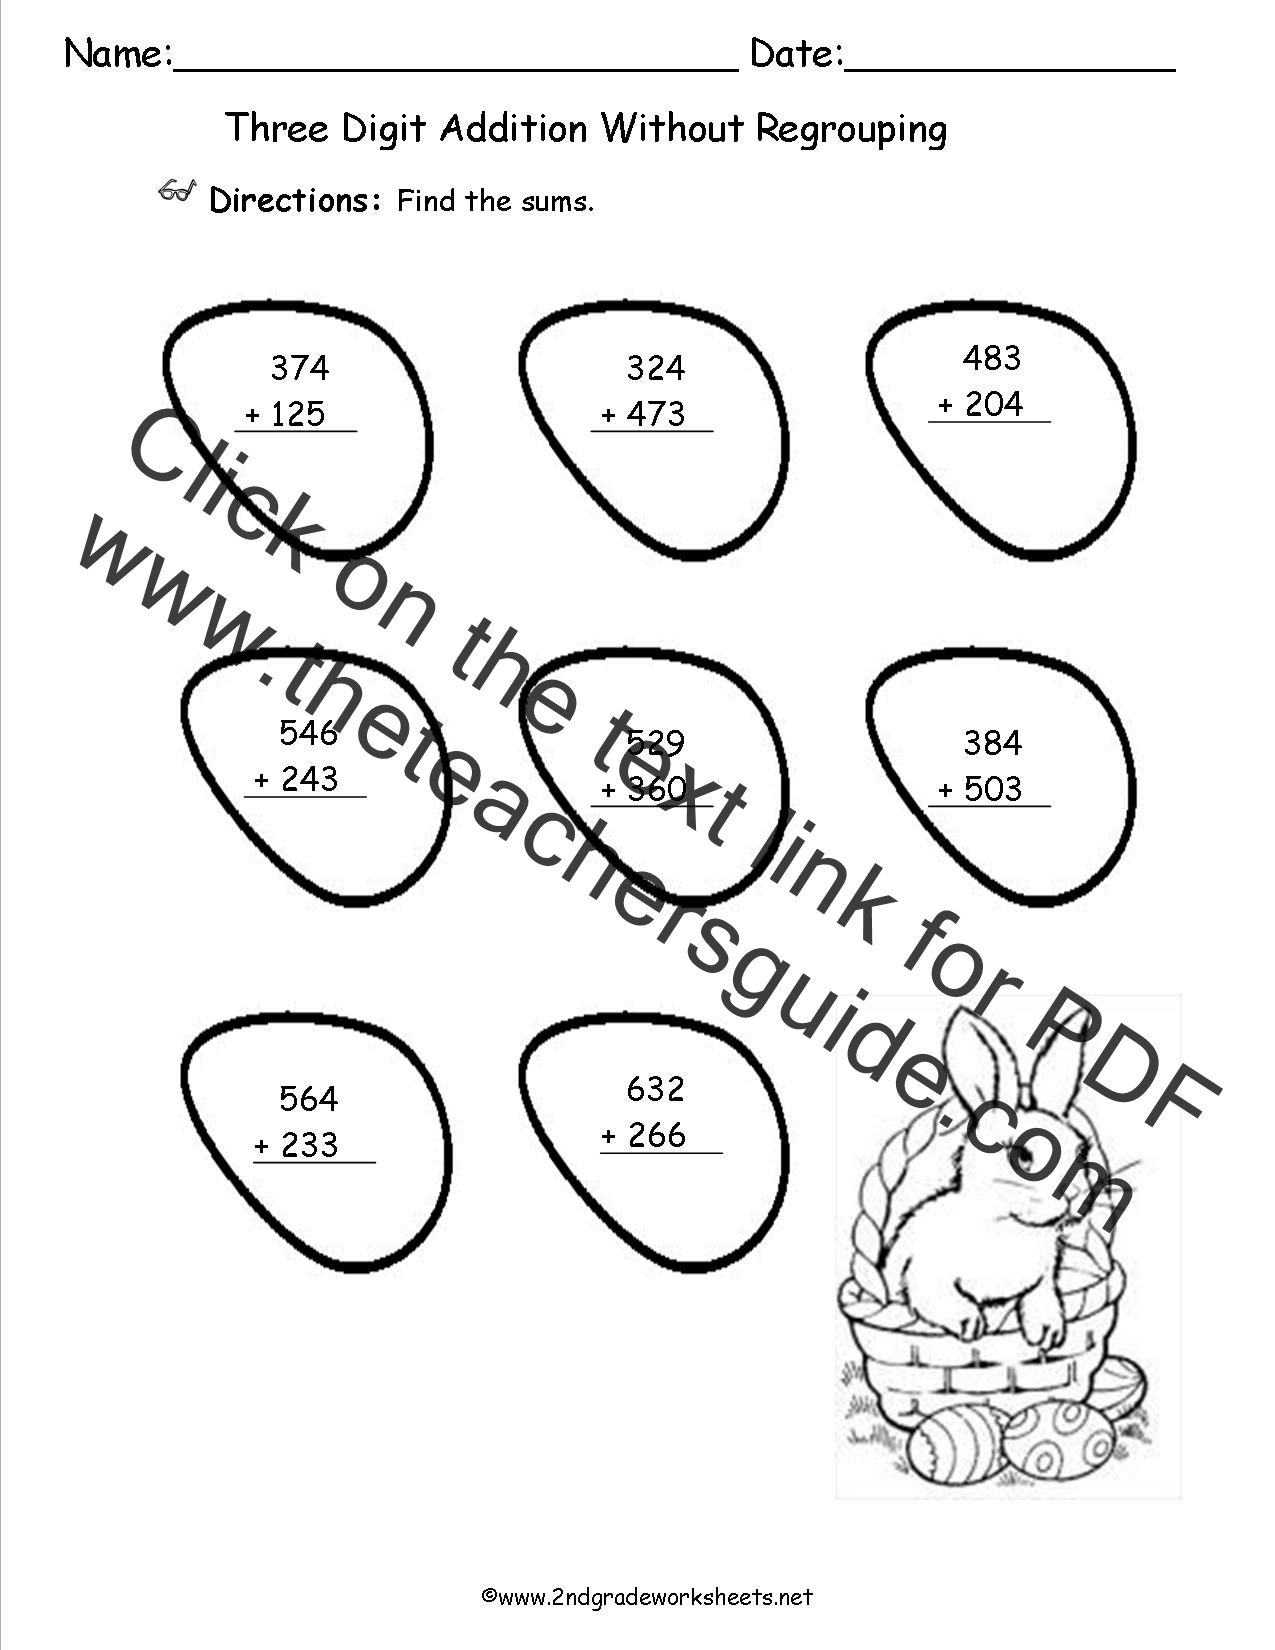 Easter Worksheets and Printouts – Three Digit Subtraction with Regrouping Worksheet